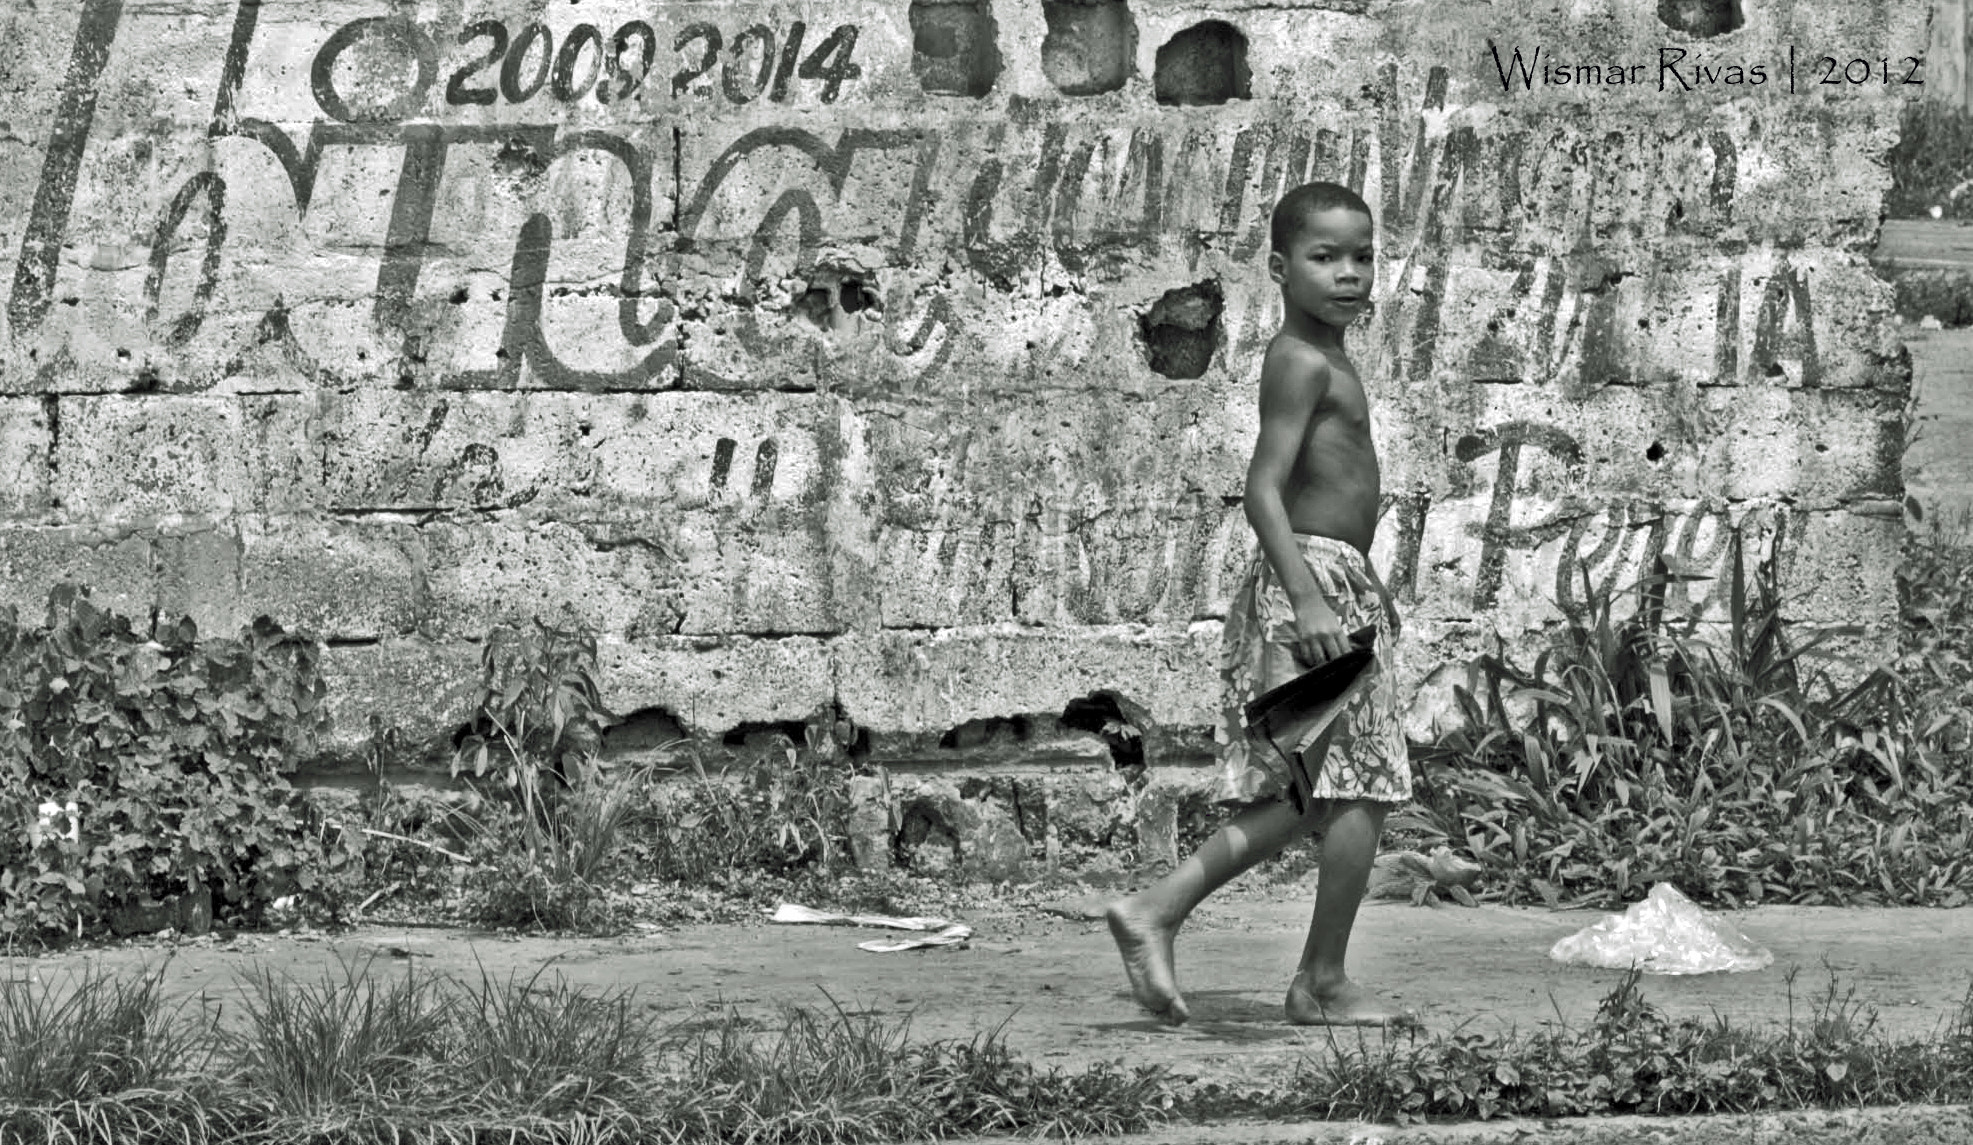 Photograph children of the street by Wismar Rivas on 500px